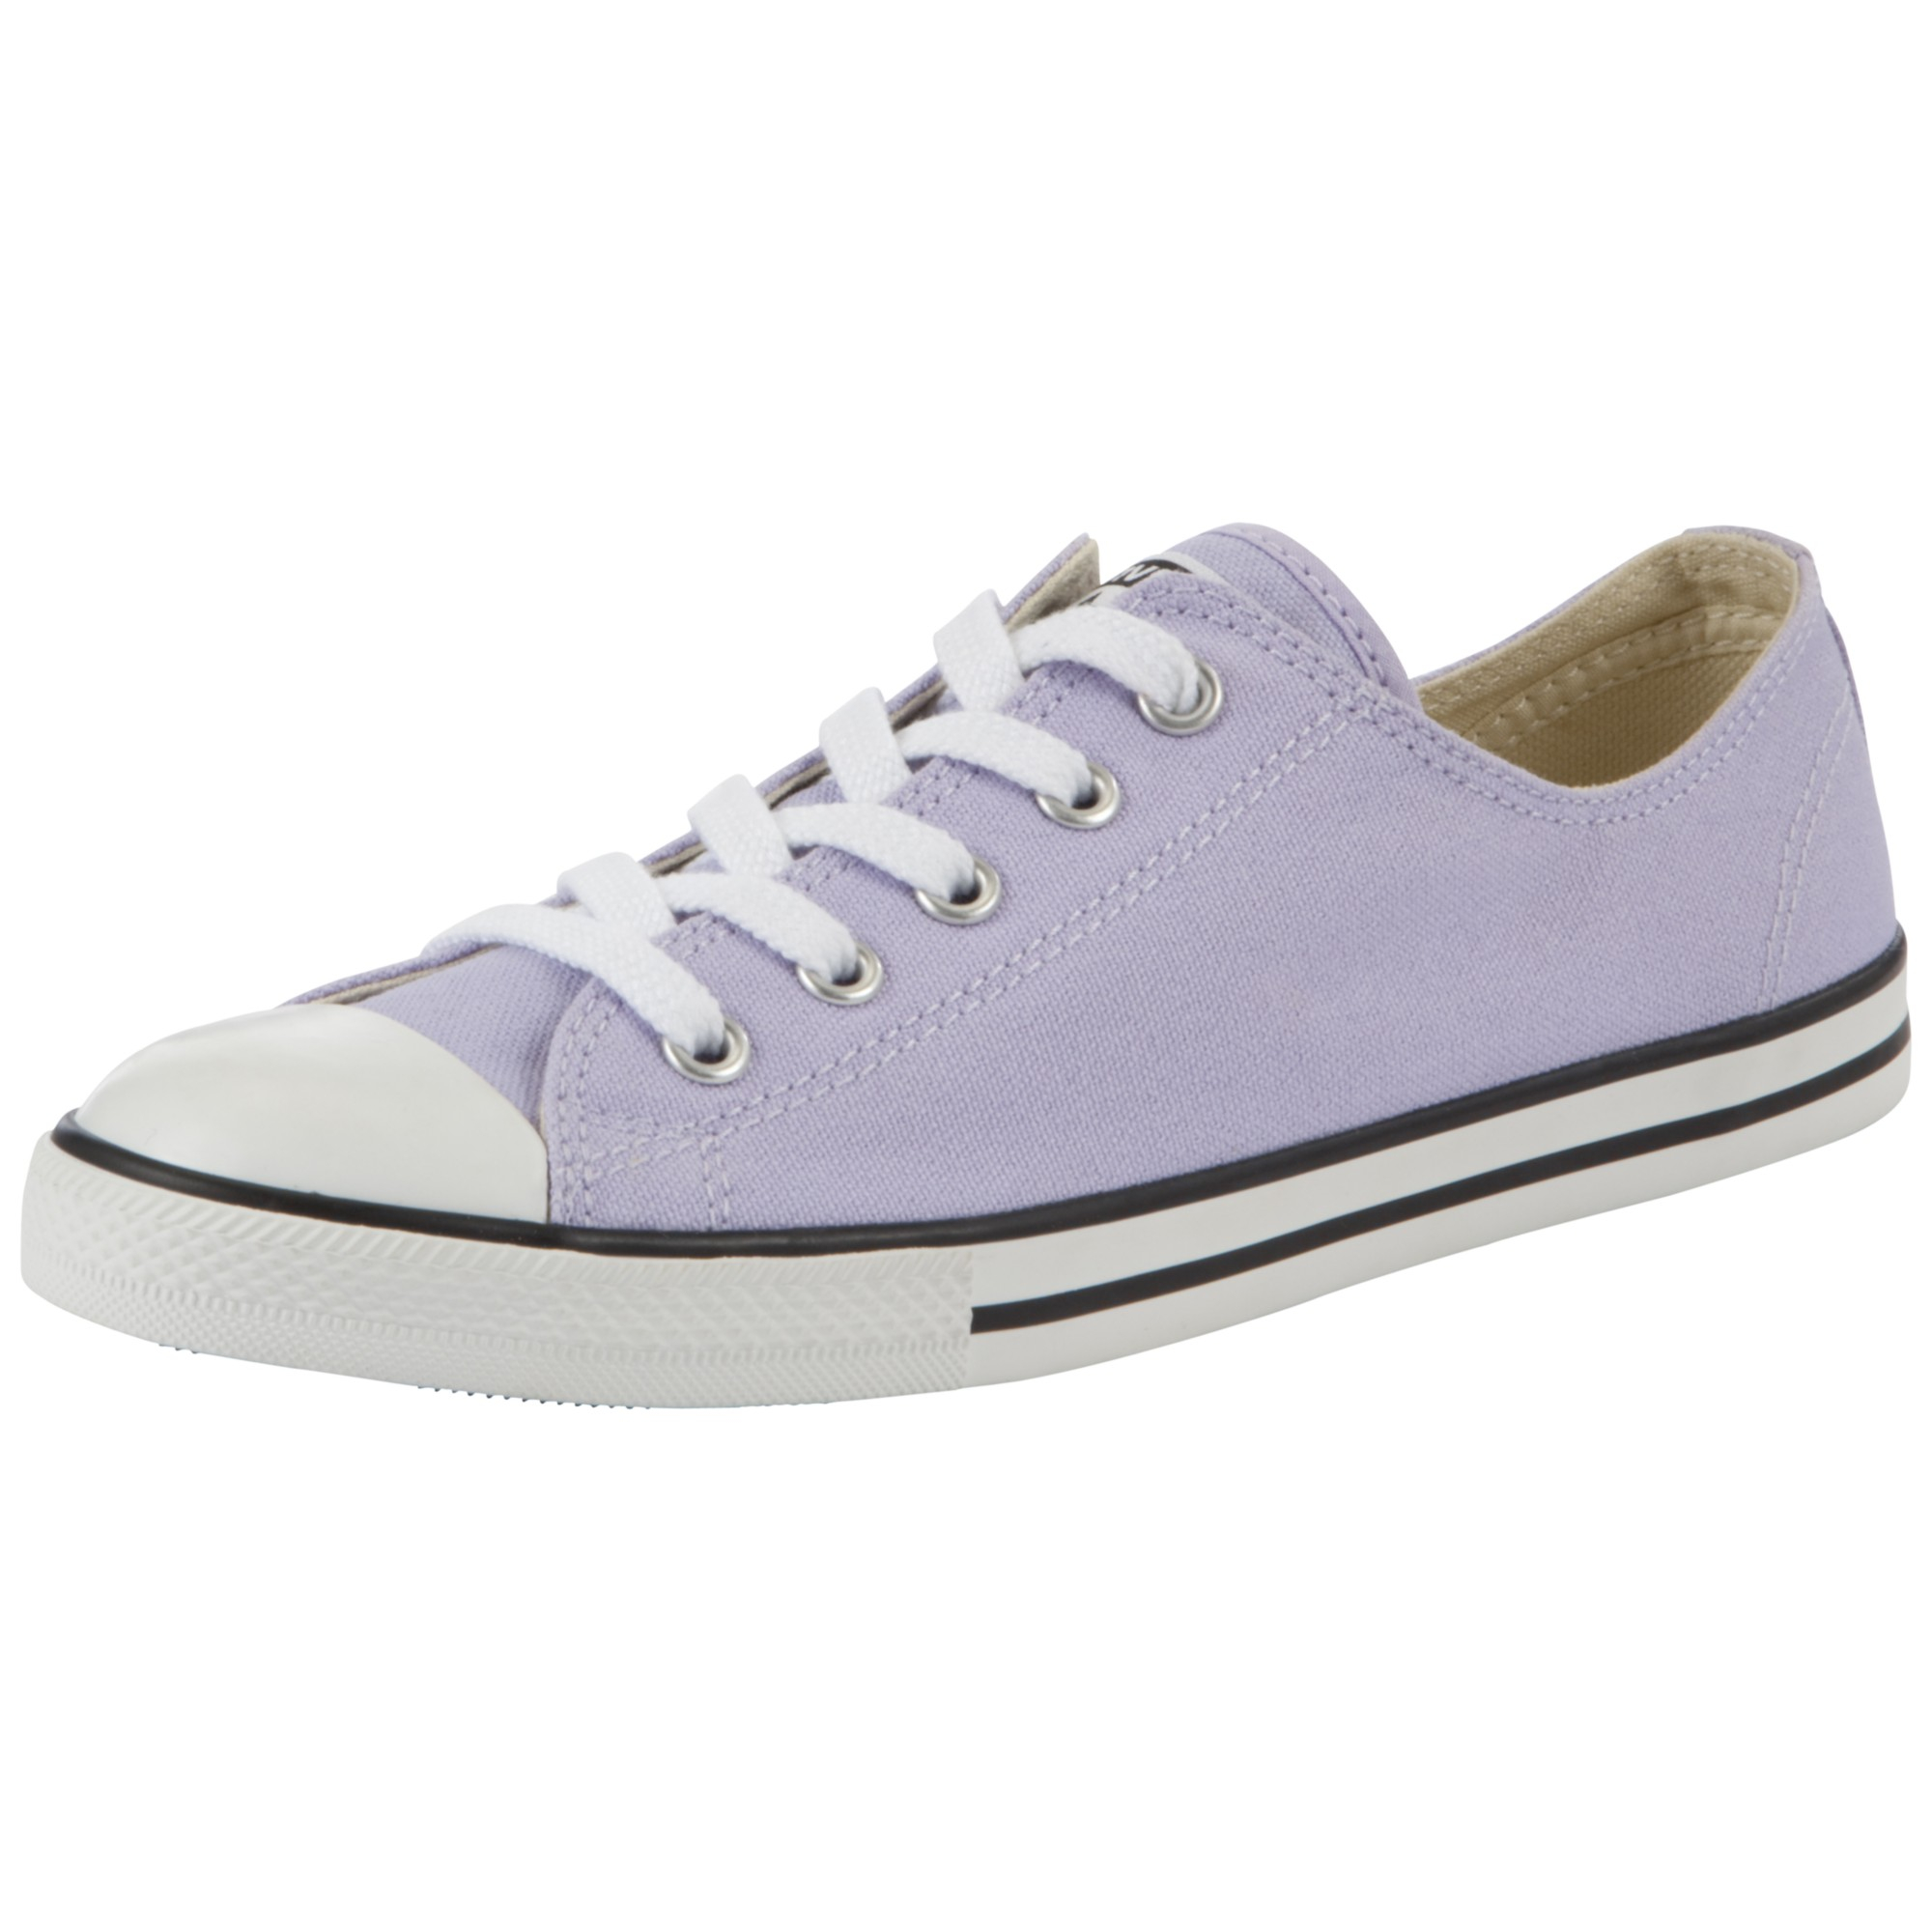 Converse Chuck Taylor All Star Dainty Canvas Trainers